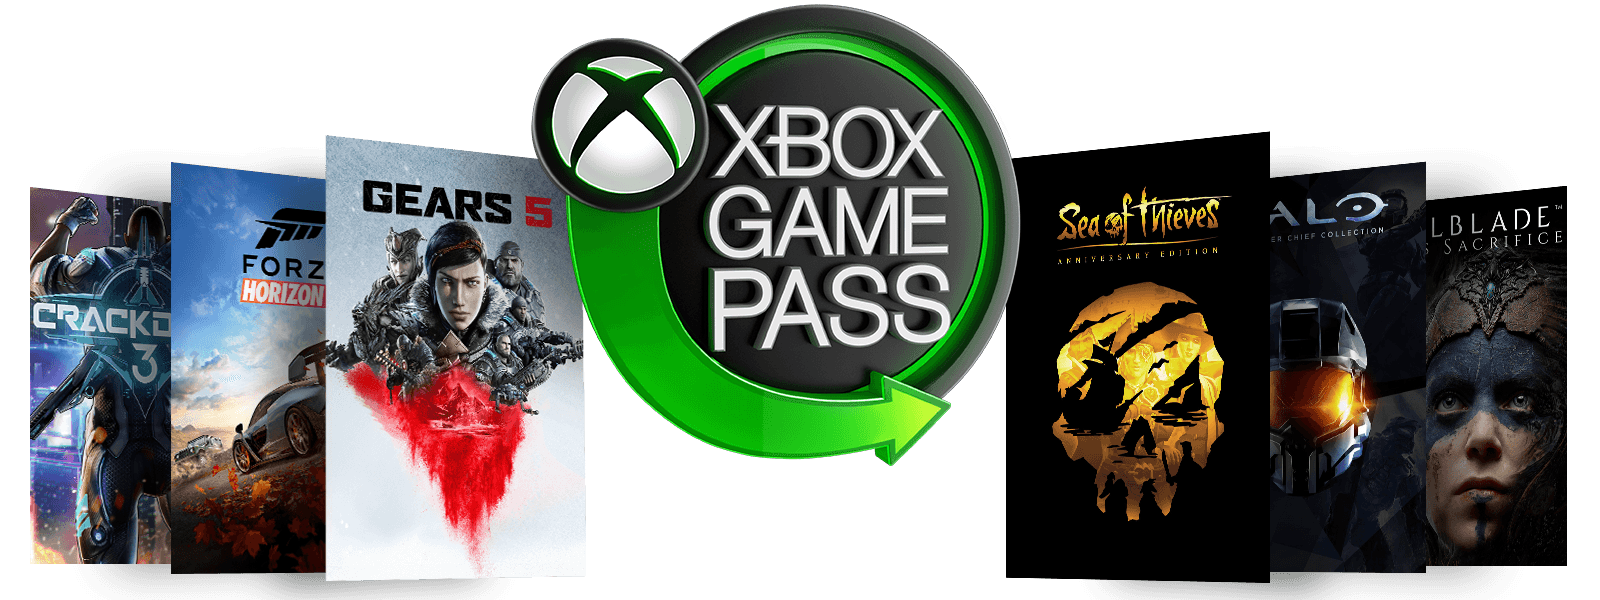 Neon Xbox Game Pass logo omgeven door box art voor Forza Horizon 4, Playerunknown Battleground, Crackdown 3, de jubileumeditie van sea of thieves, halo en Hellbade: senua's offer